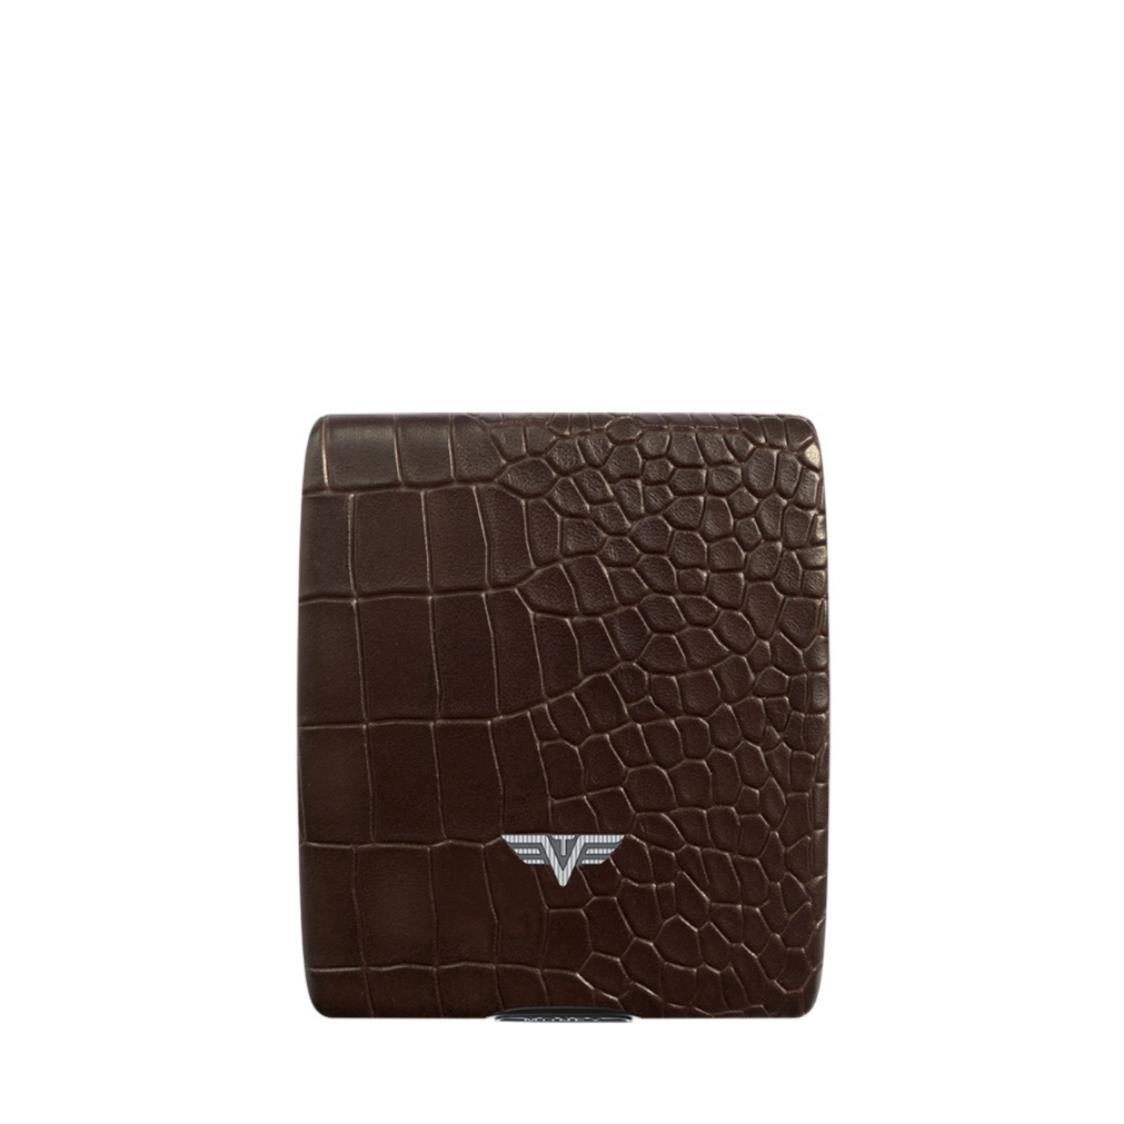 Wallet Money  Cards Croco Brown